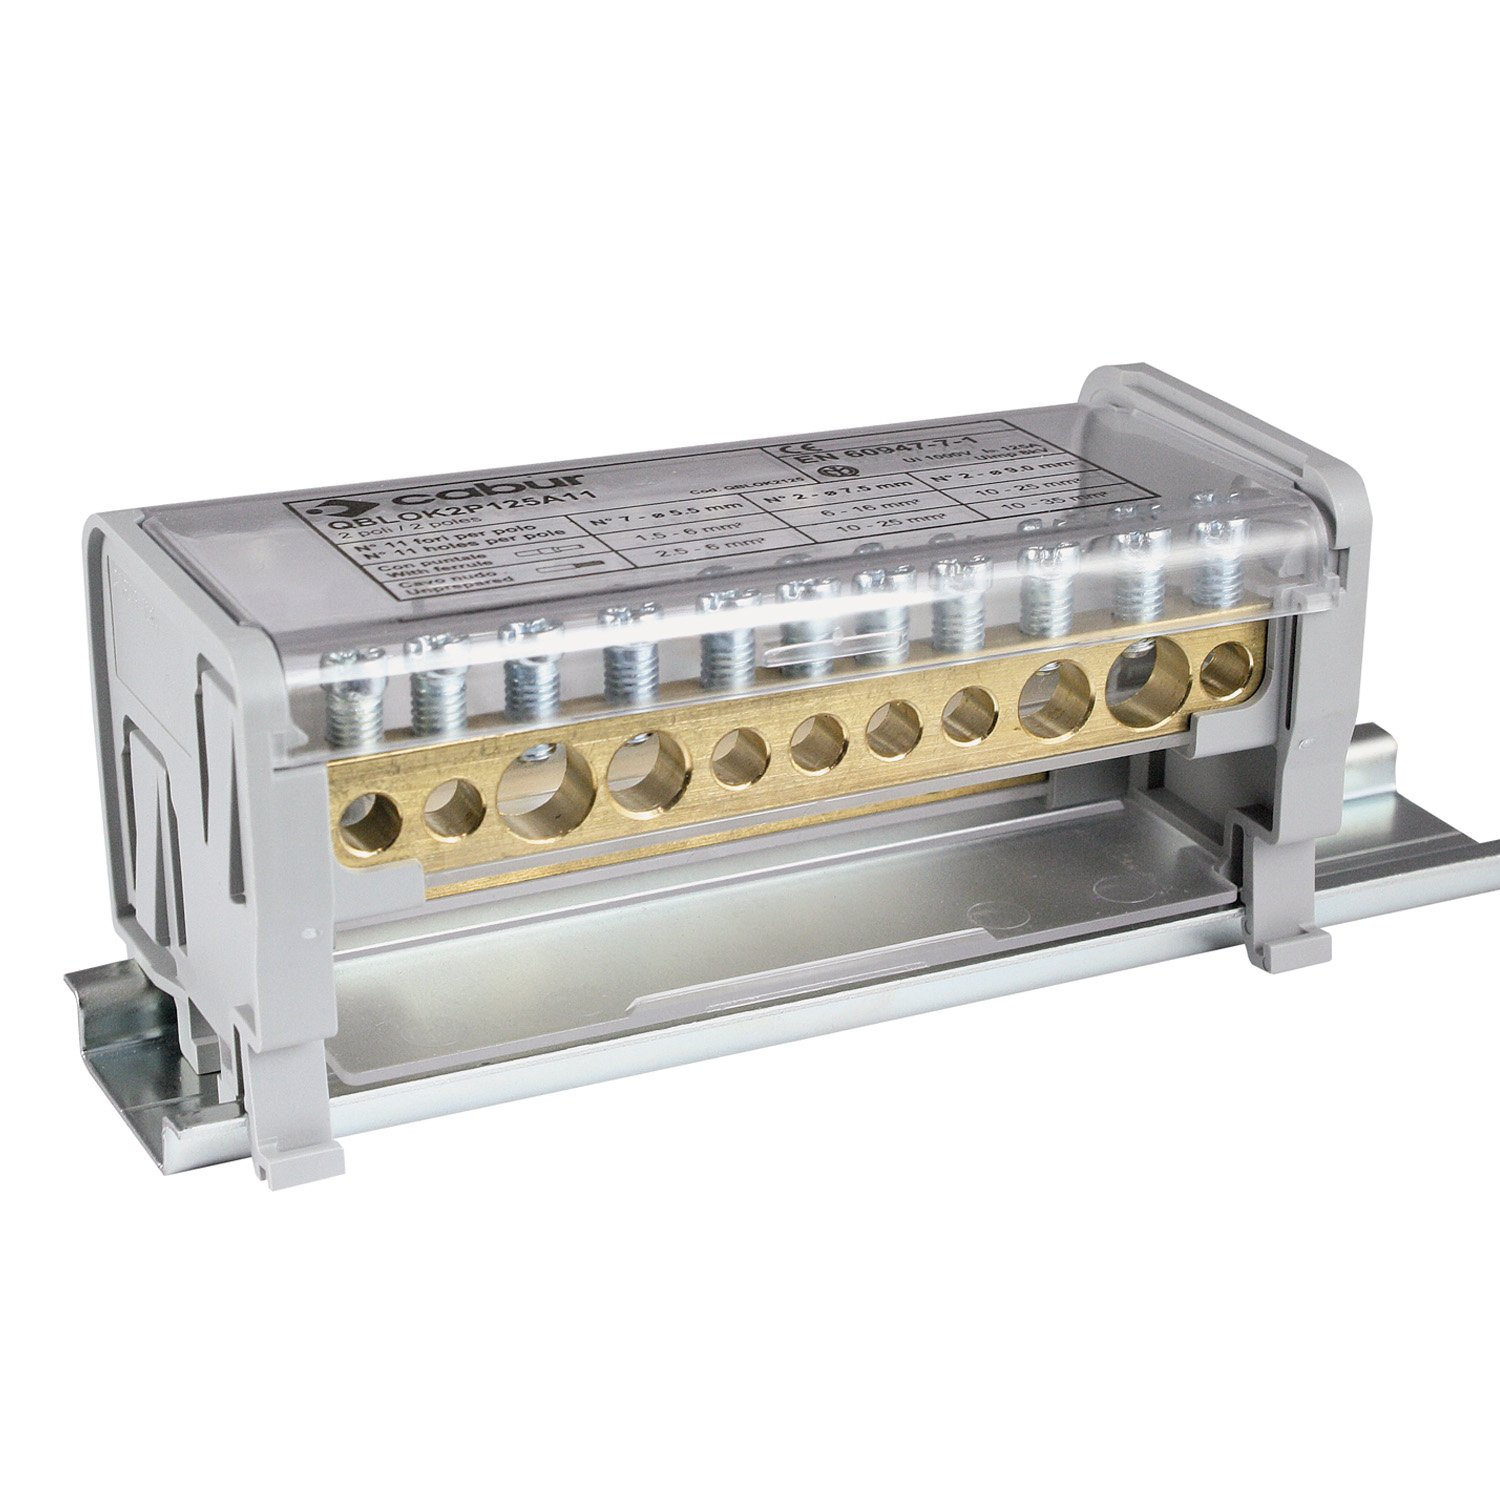 ASI QBLOK2125 Power Distribution Module, 2 Busbars, 125 Amp, 1000V, 11 Connections (Pack of 2) by Automation Systems Interconnect (Image #1)